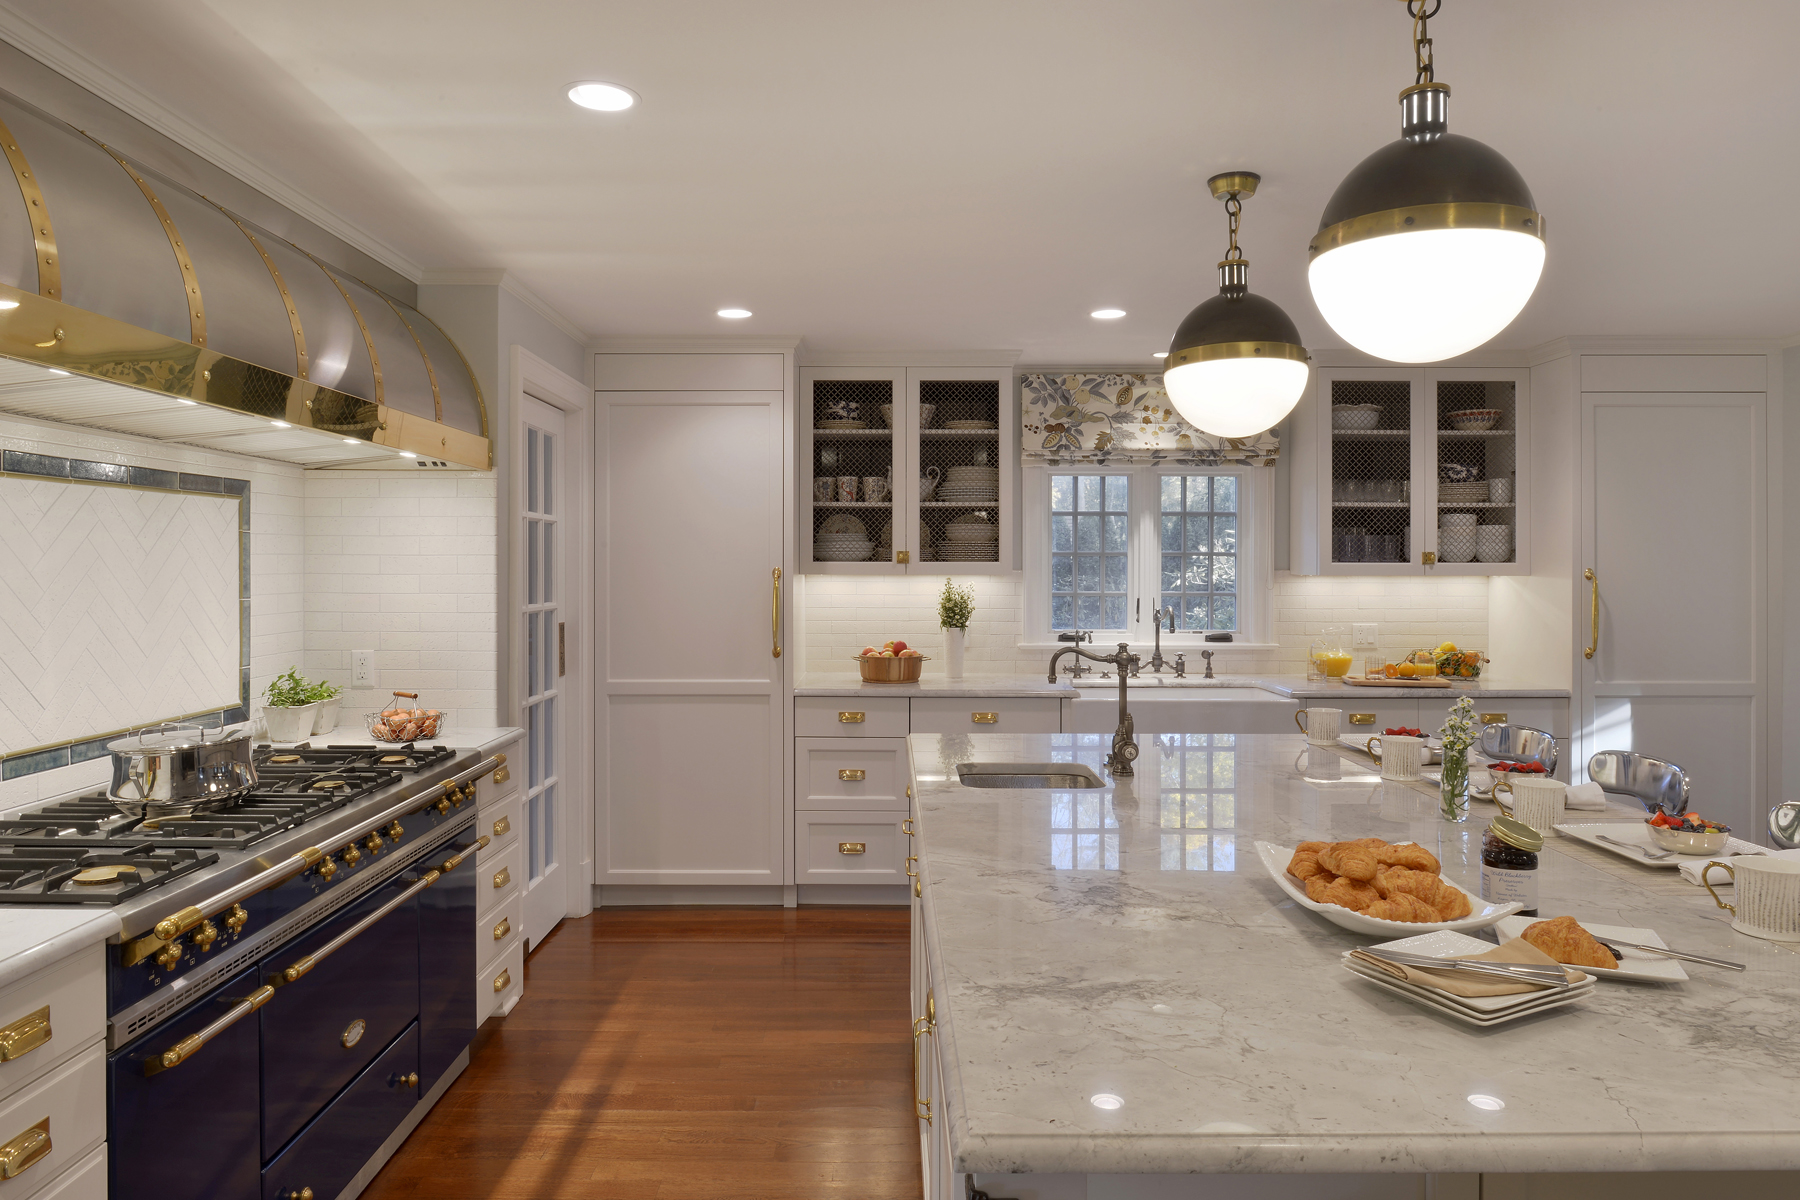 L-shaped traditional kitchen features large island with seating, natural oak flooring, marble counters, and fully custom white painted Bilotta cabinets with brass hardware. Wall cabinets have wire mesh inserts for display. Designed by Randy O'Kane, CKD of Bilotta Kitchens.